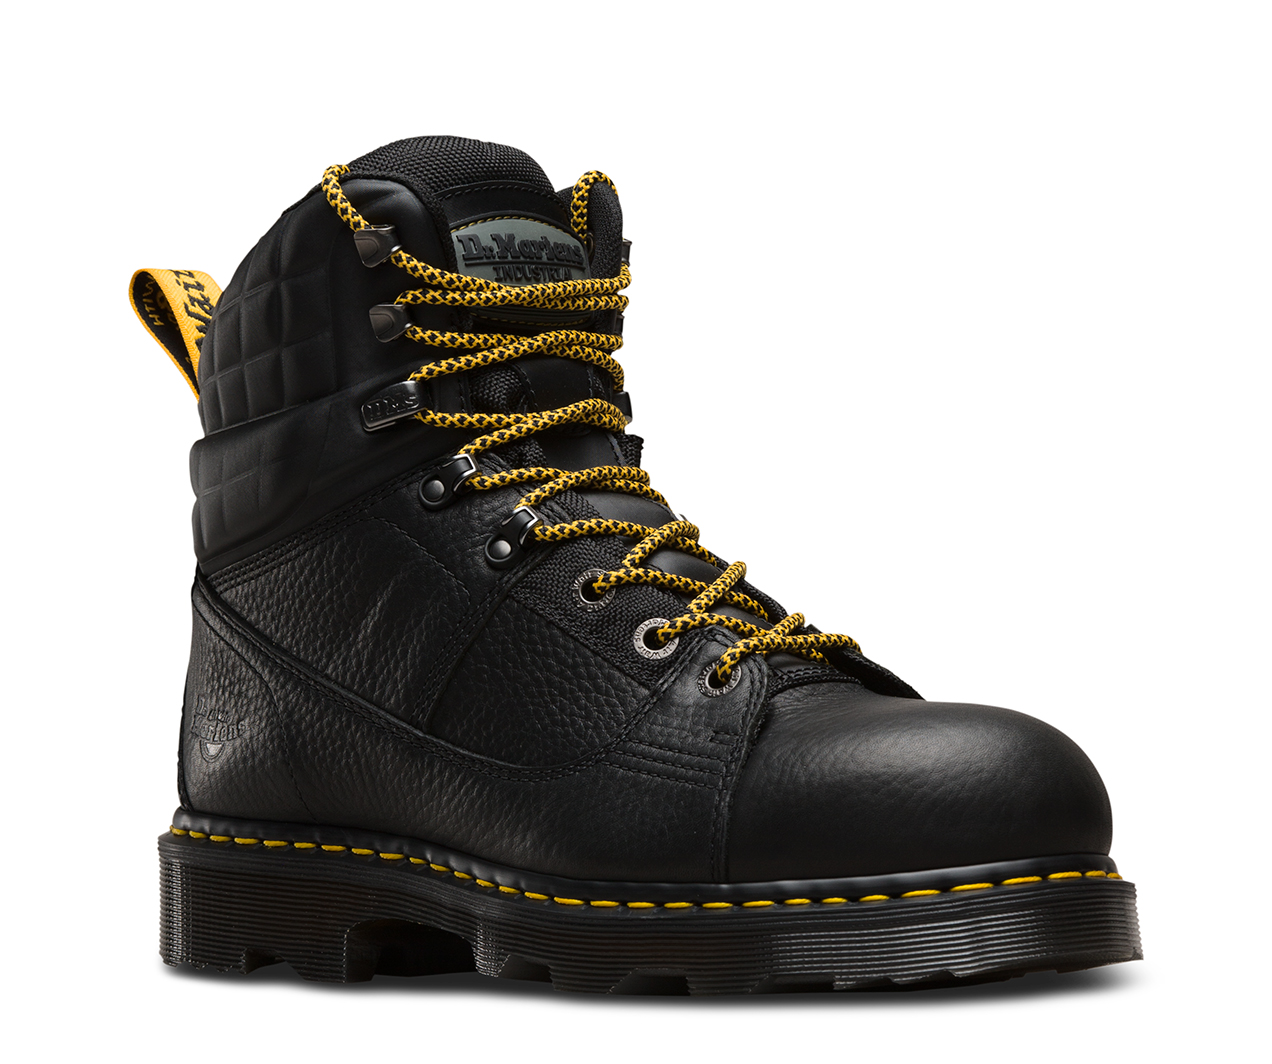 cheap 100% original Men's Dr. Martens Industrial Camber Steel Box Work Boots outlet low price fee shipping cheap cost 0rZxVJ